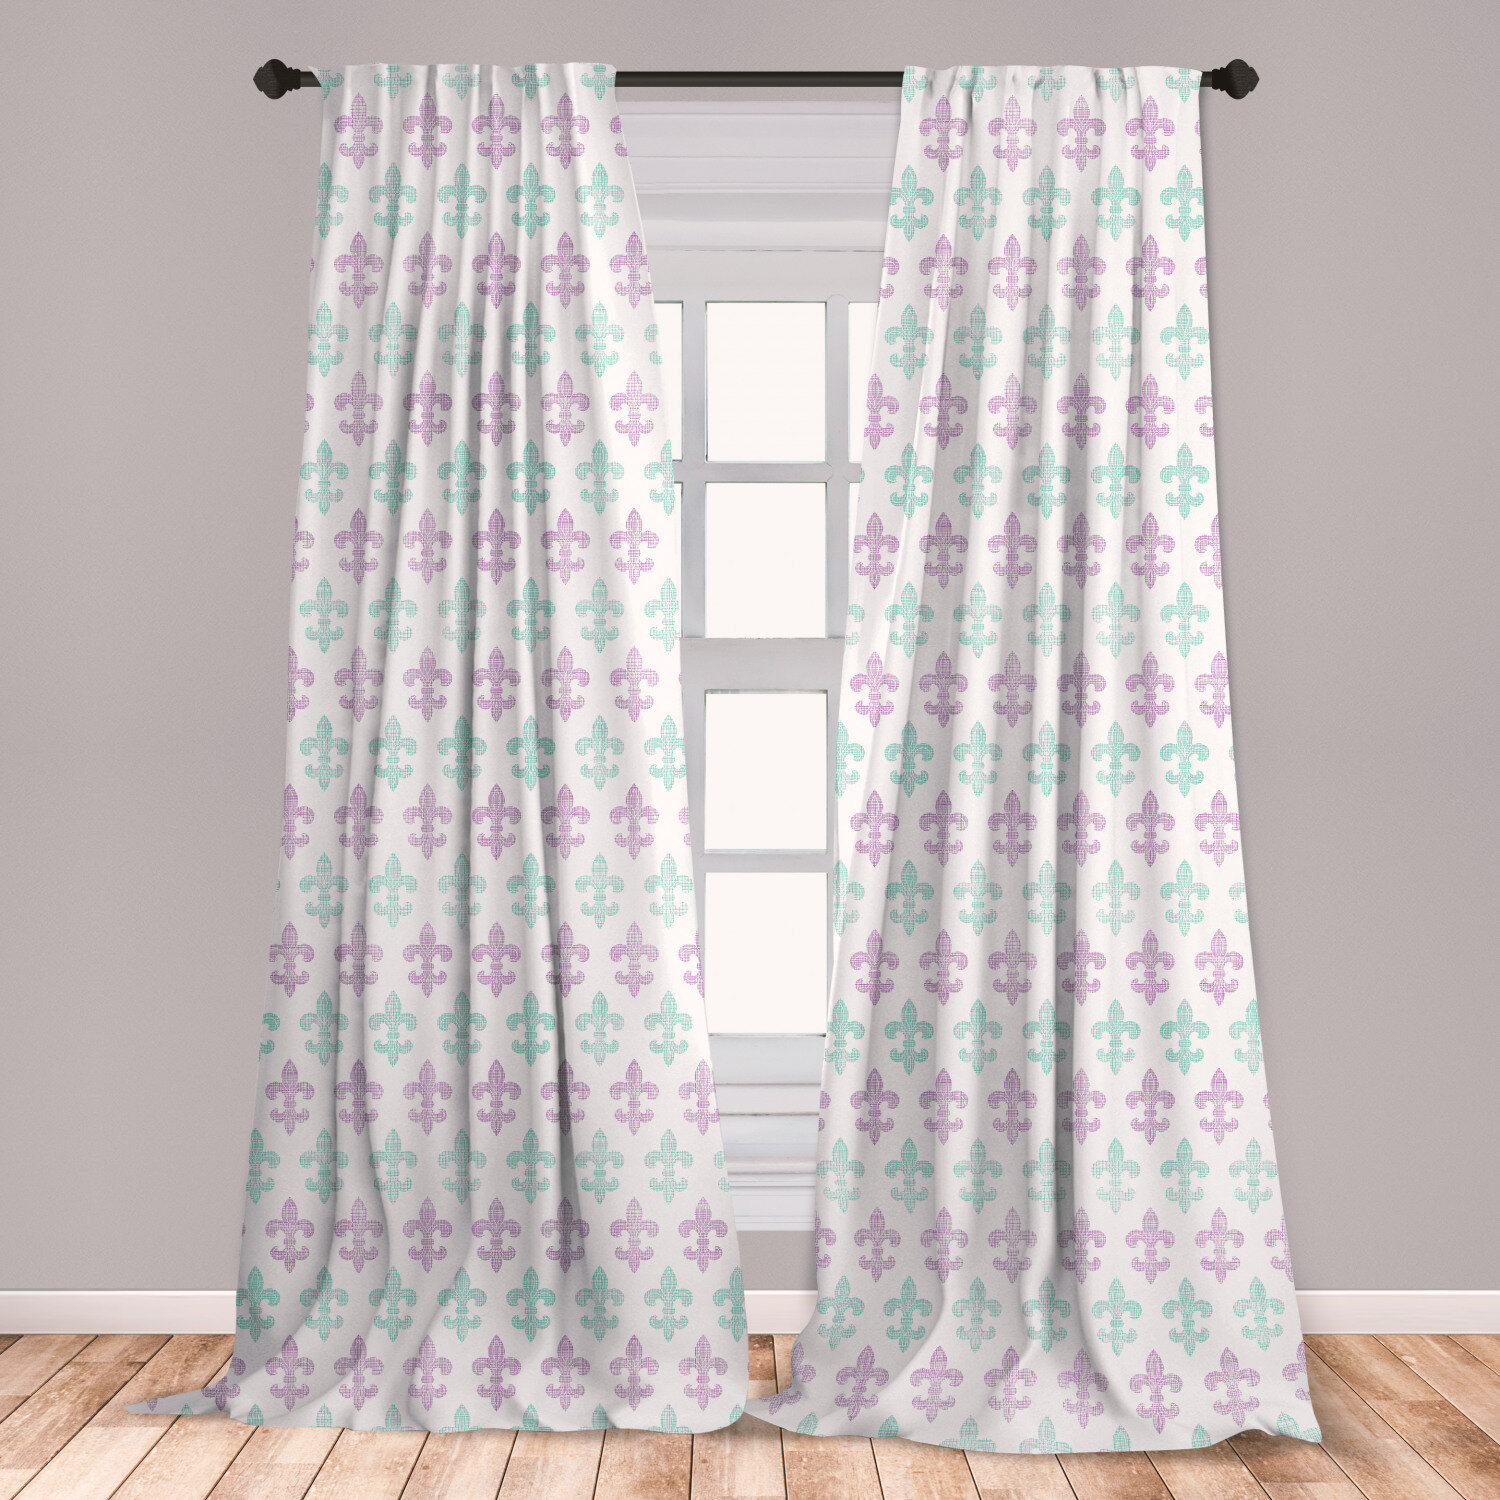 East Urban Home Ander Fleur De Lis 2 Panel Curtain Set Abstract Old Fashioned Lily Flowers With Grunge Look Pastel Colors Lightweight Window Treatment Living Room Bedroom Decor 56 X 95 Mint